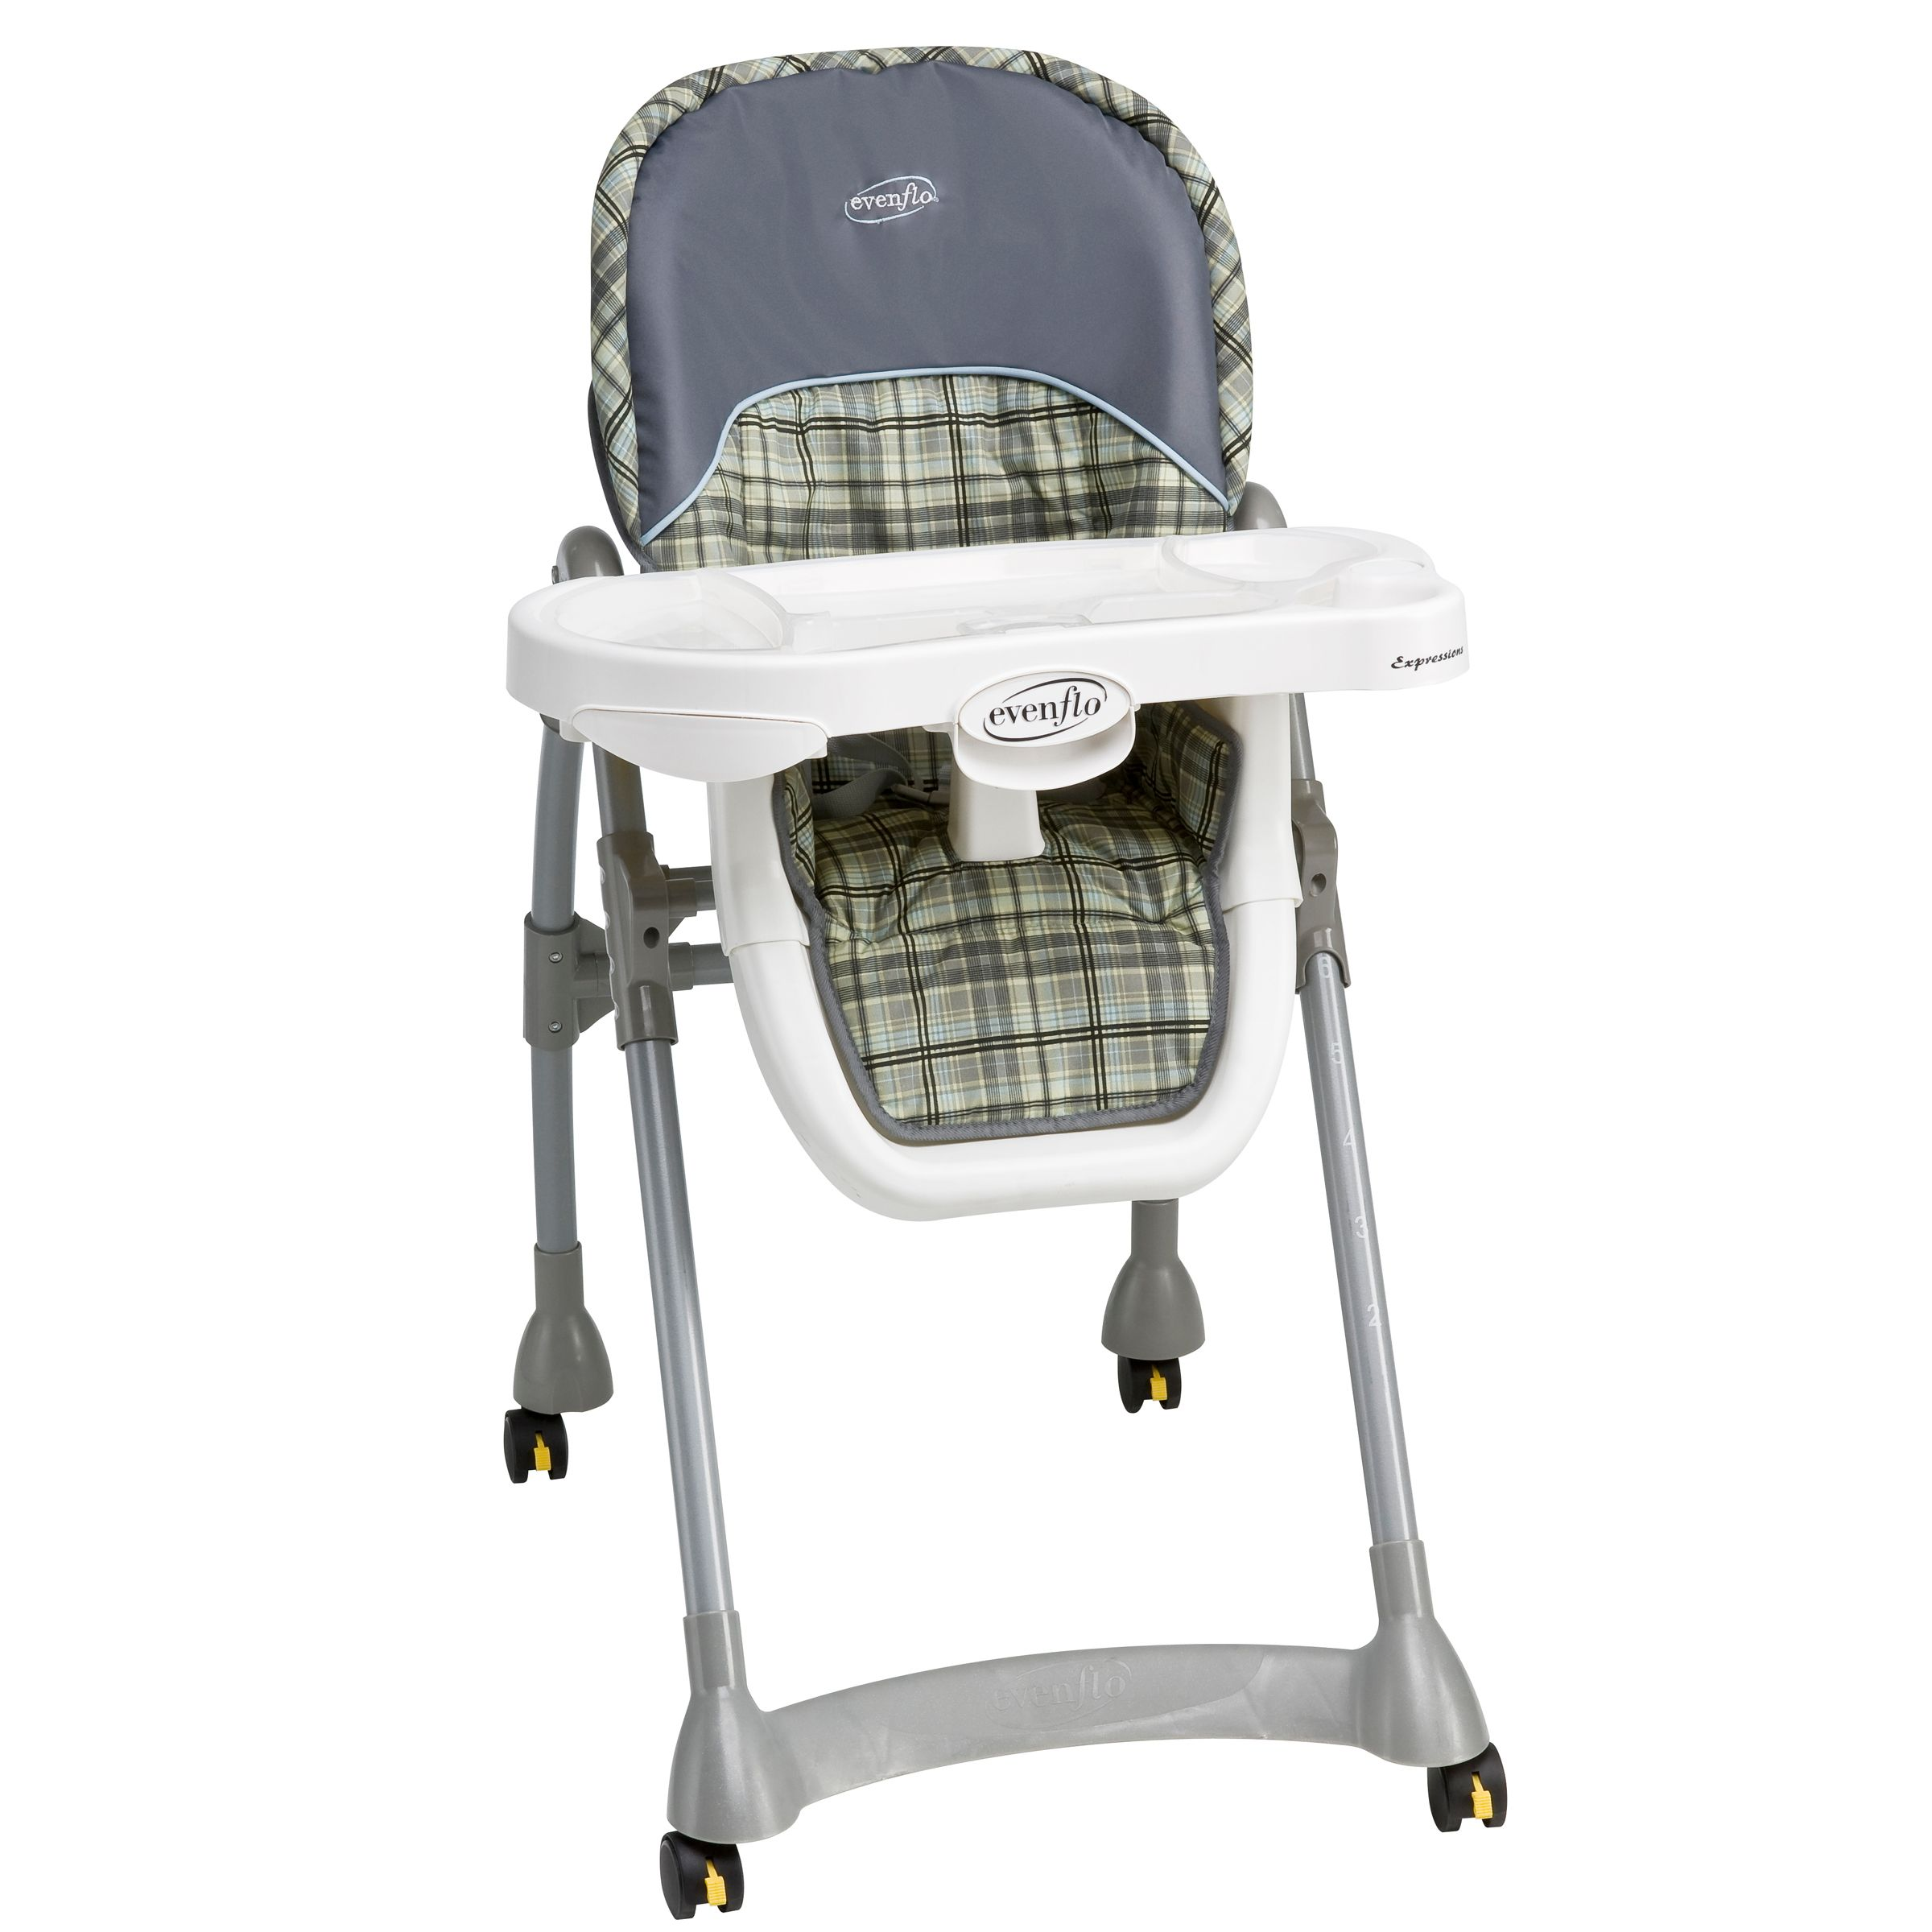 evenflo expressions high chair glider covers bergen